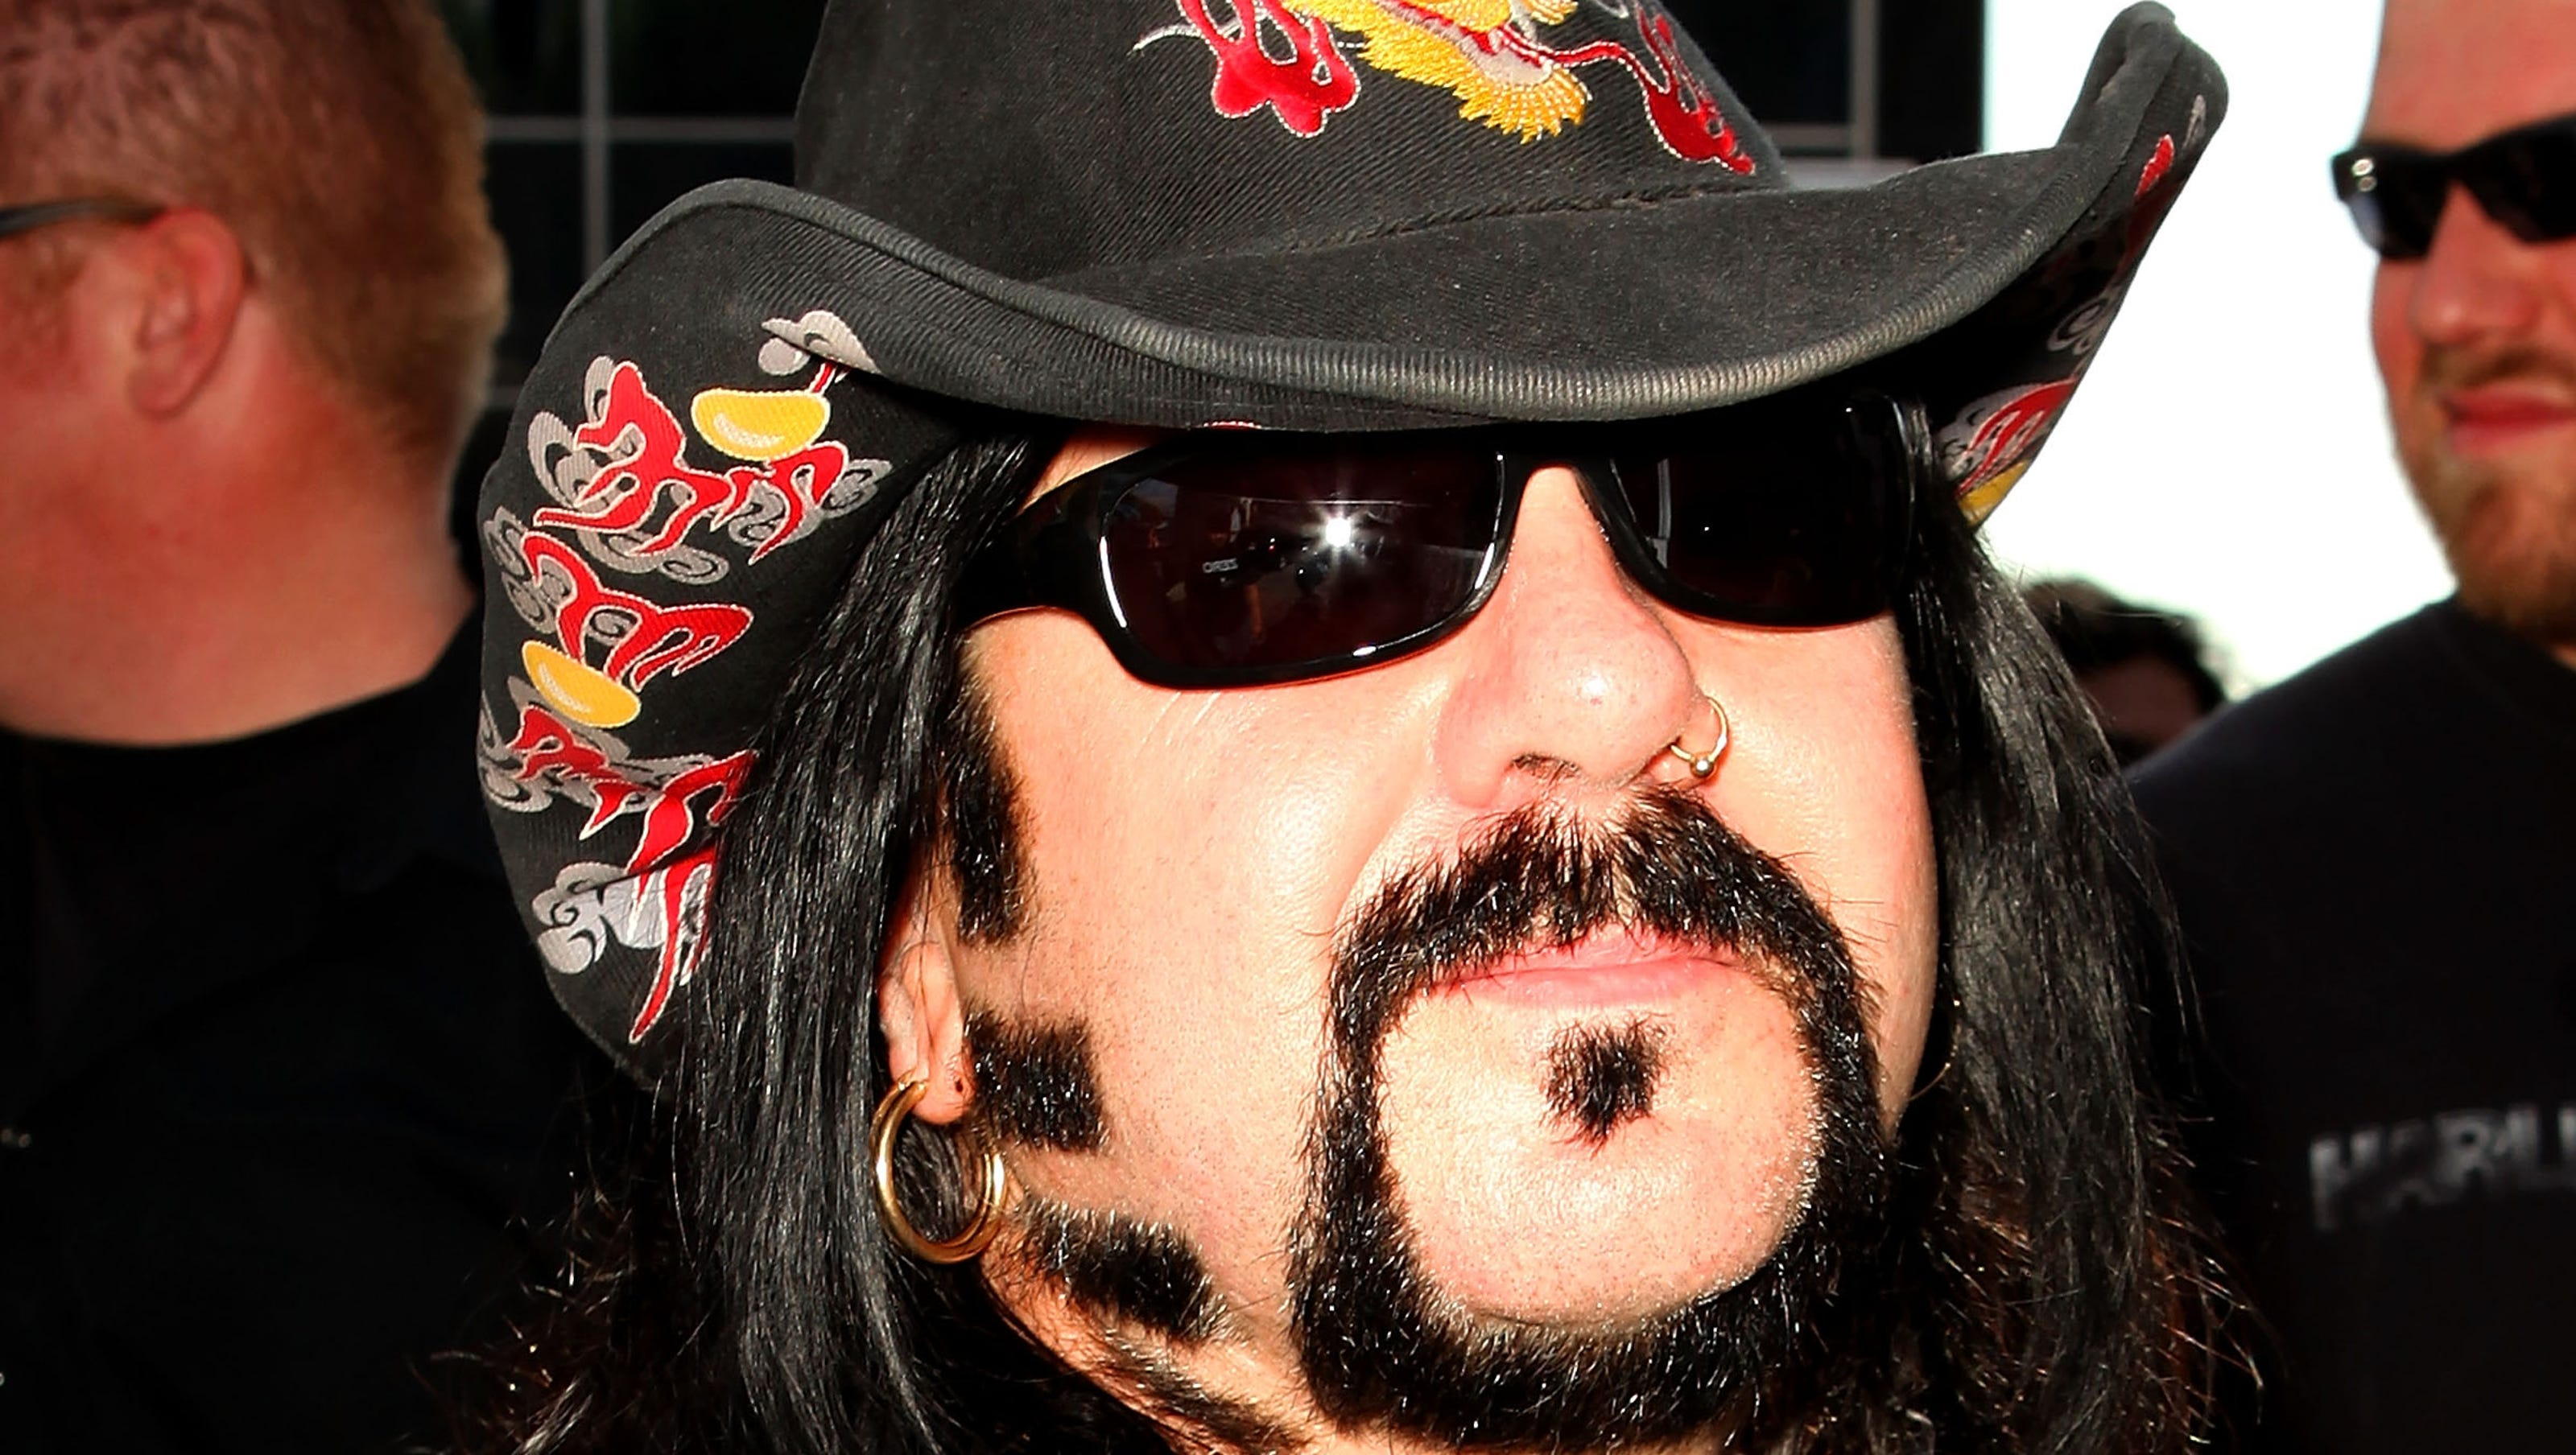 Vinnie Paul Pantera drummer co founder s at 54